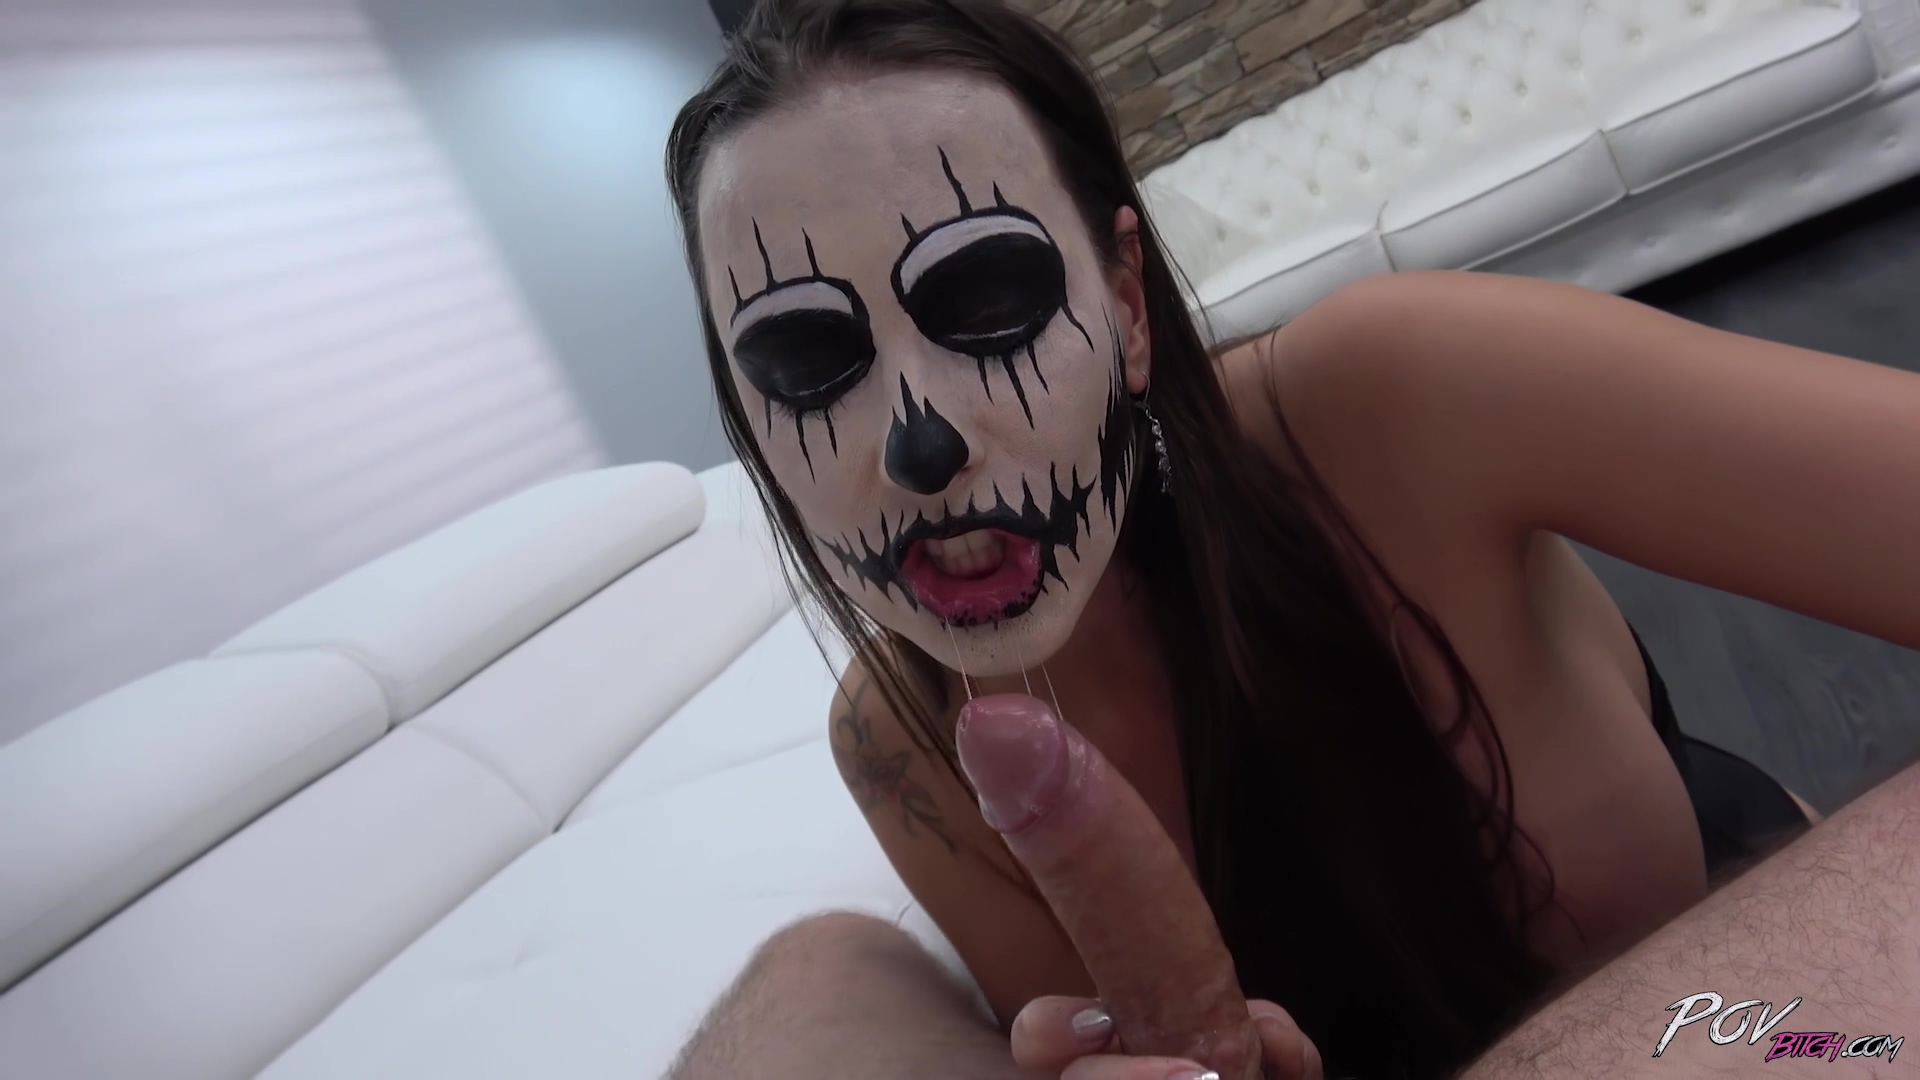 She's sucking dick with halloween face paint